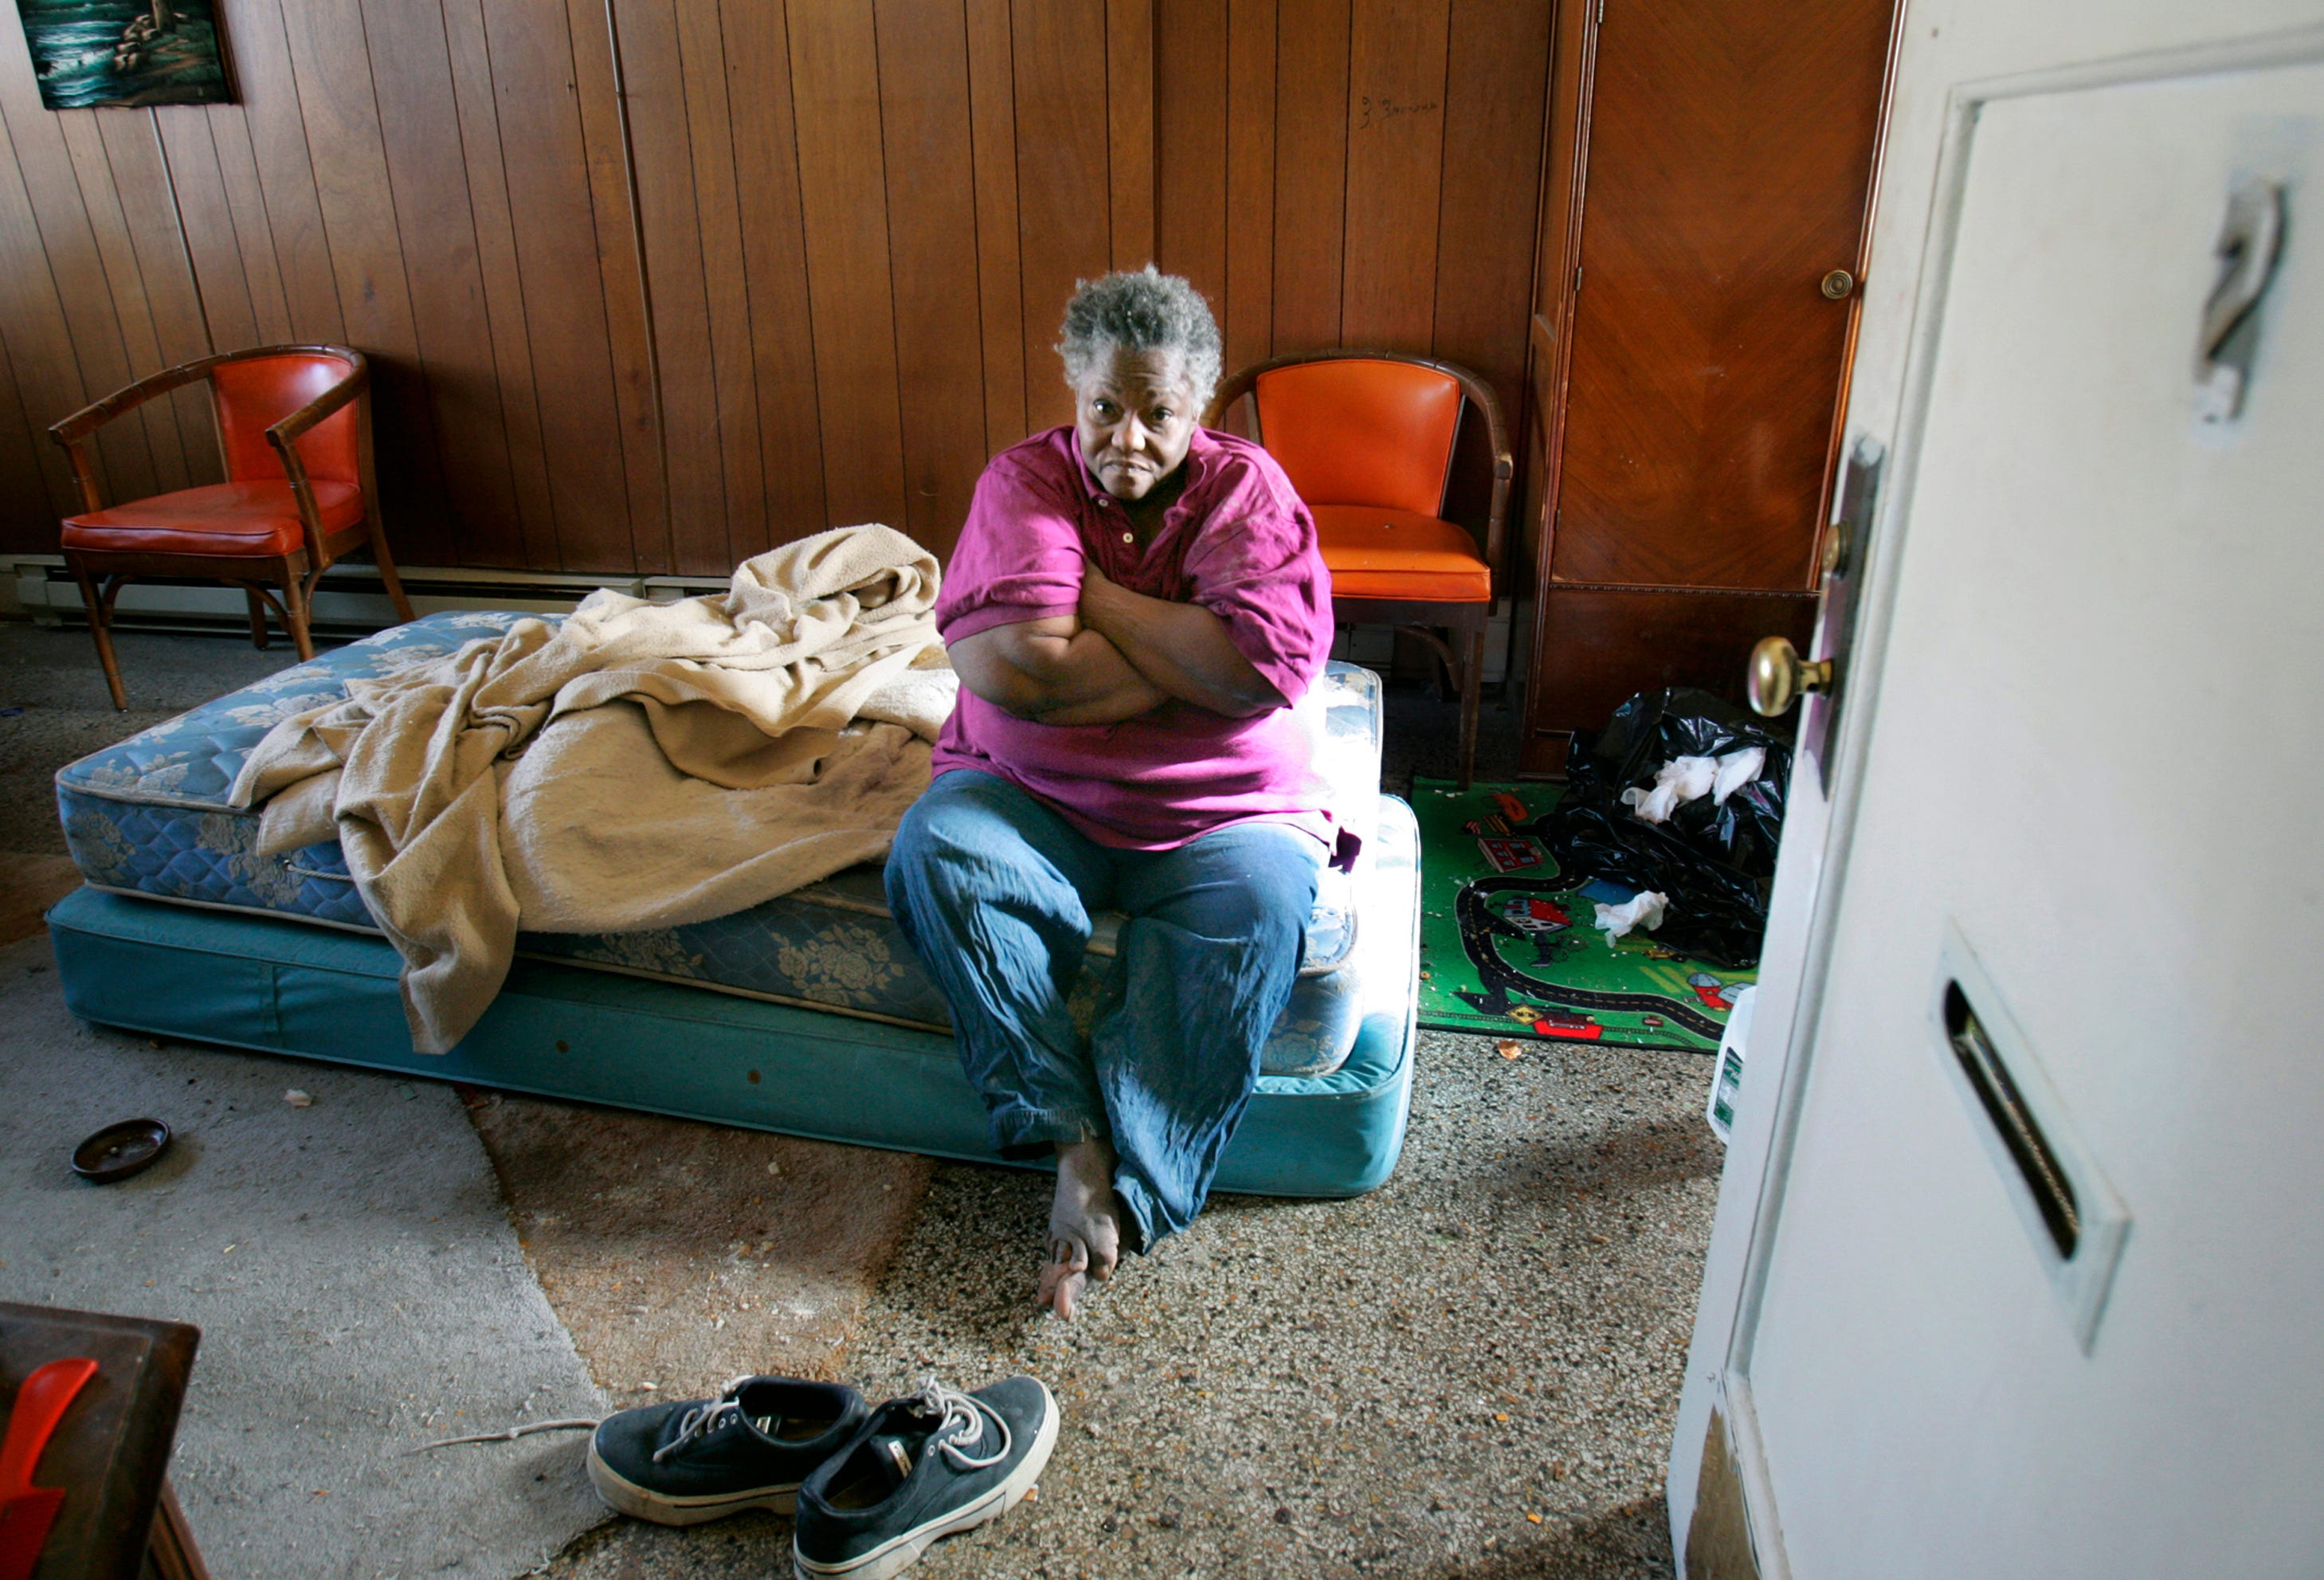 In 2006, a Journal Sentinel investigation revealed dangerous and deadly conditions for hundreds of people with mental illness. In this 2006 photo, Bessie Johnson sits on a bare mattress soaked in her own urine at a boarding house in Milwaukee.